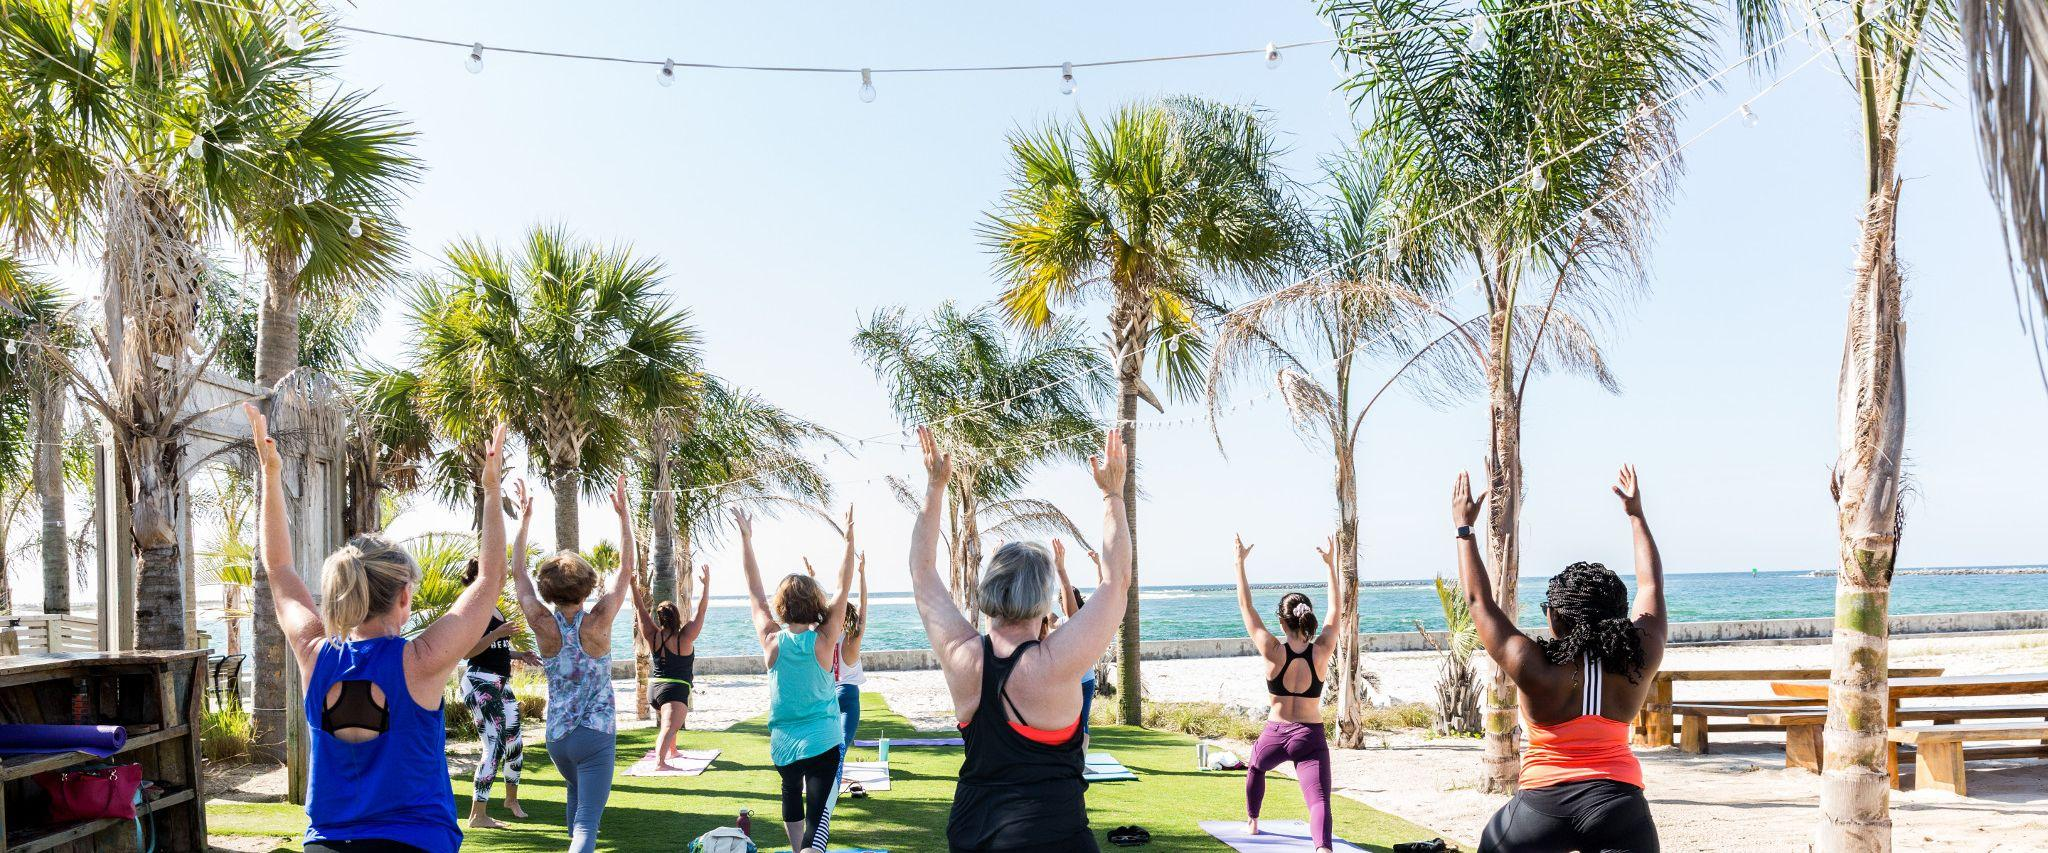 Yoga at The Gulf in Orange Beach, AL